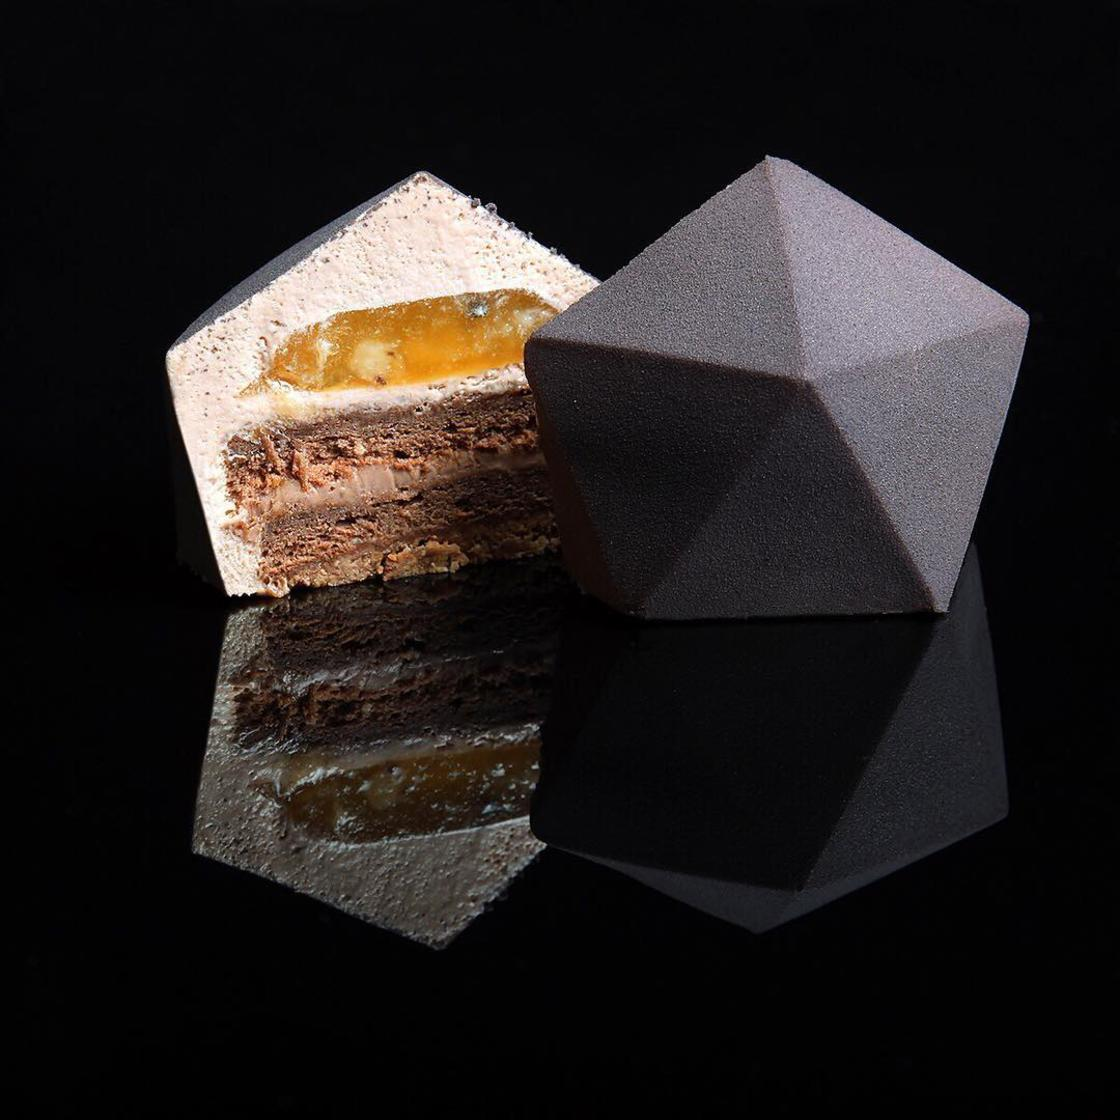 Design and Cakes – The new culinary creations by Dinara Kasko